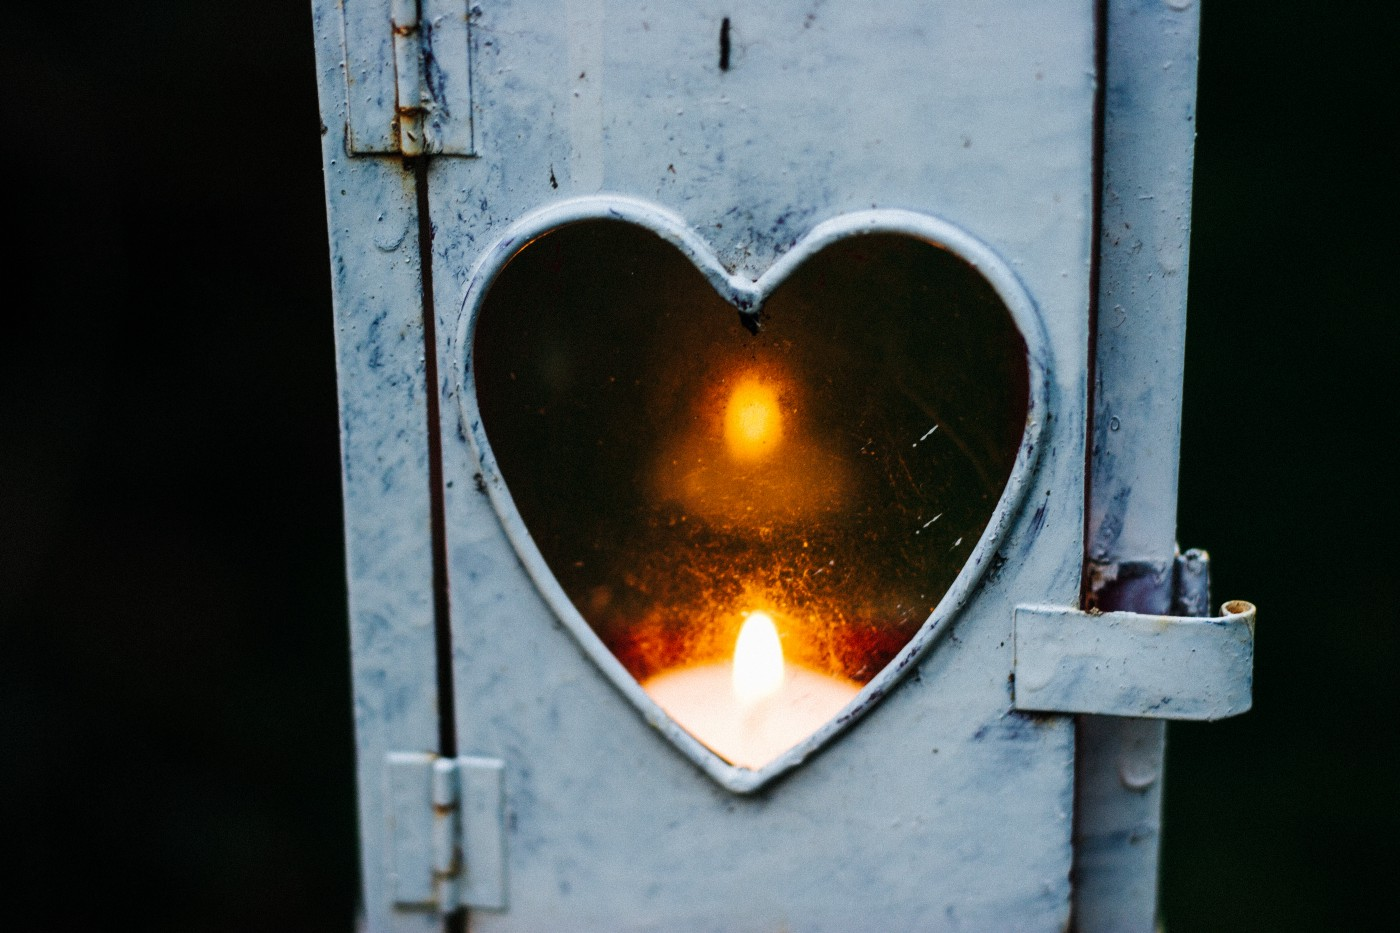 A small metal door with heart-shaped window and a candle glowing on the other side of it